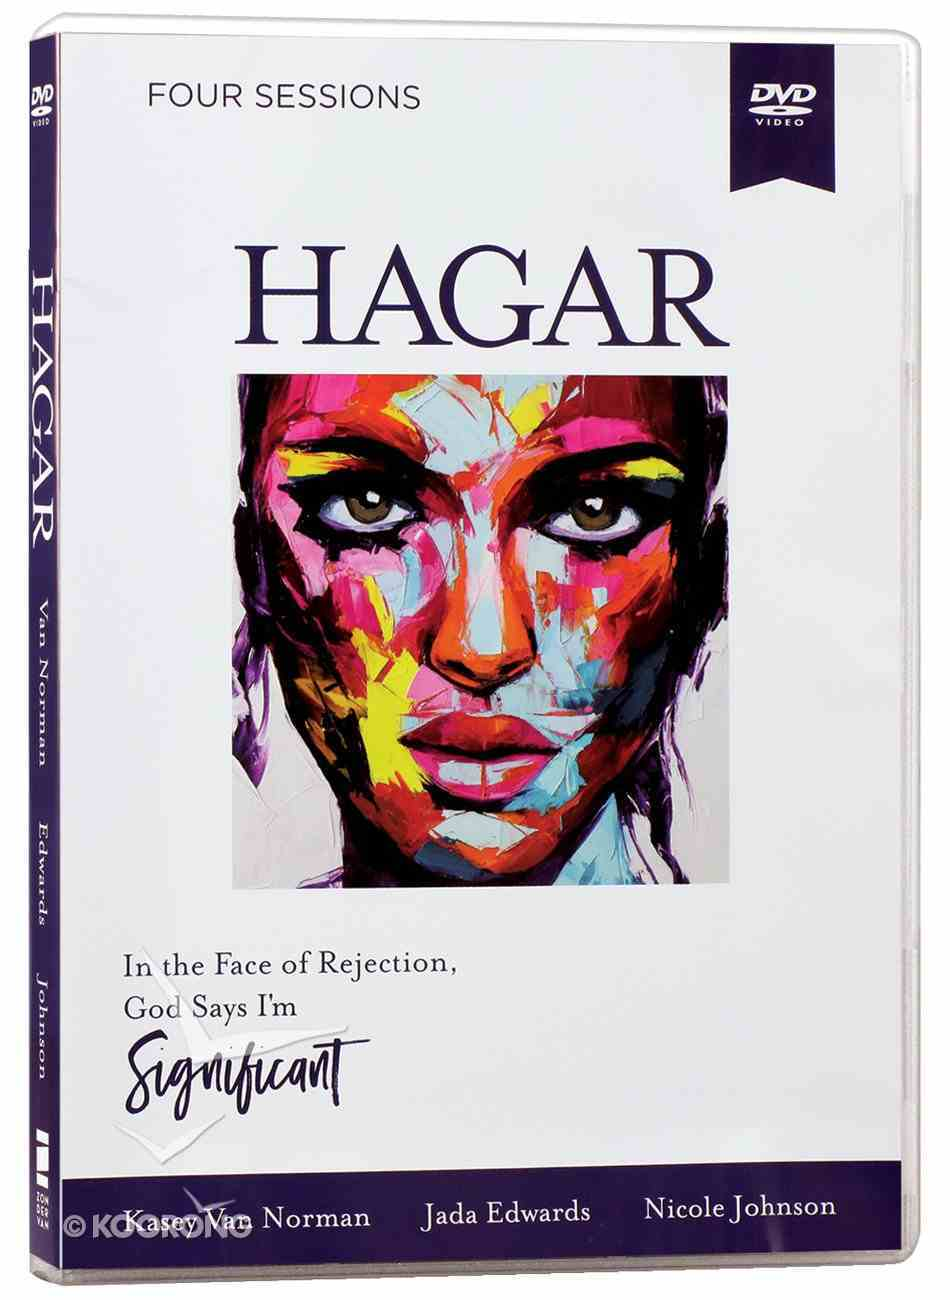 Hagar : In the Face of Rejection, God Says I'm Significant (DVD Study) (Known By Name Series) DVD